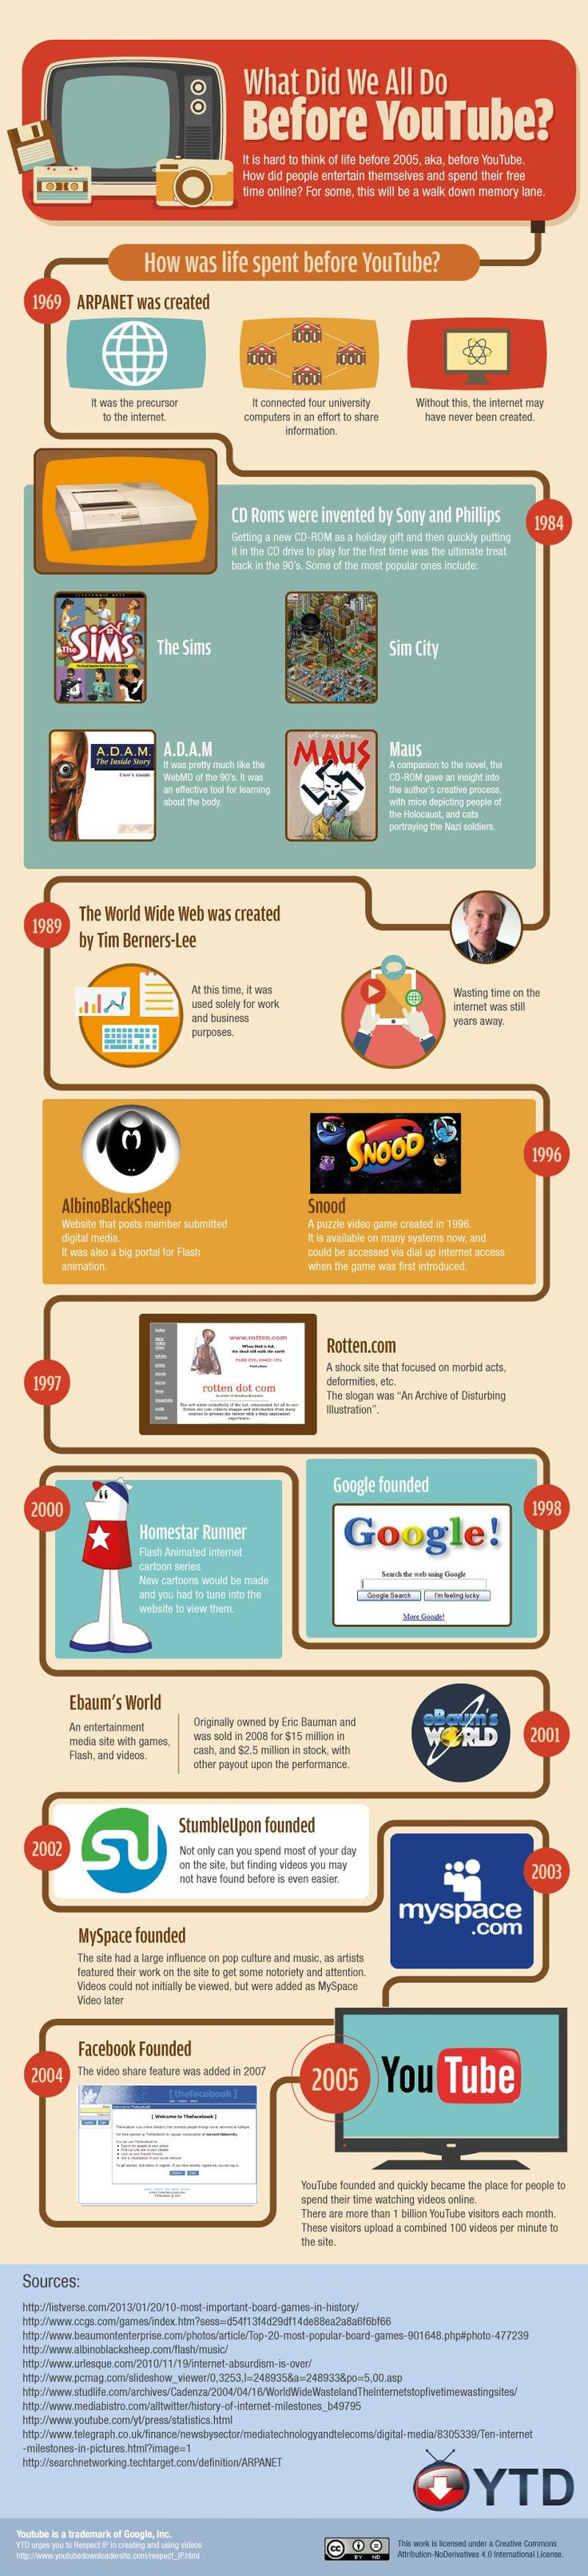 How Was Life Spent Before YouTube – infographic